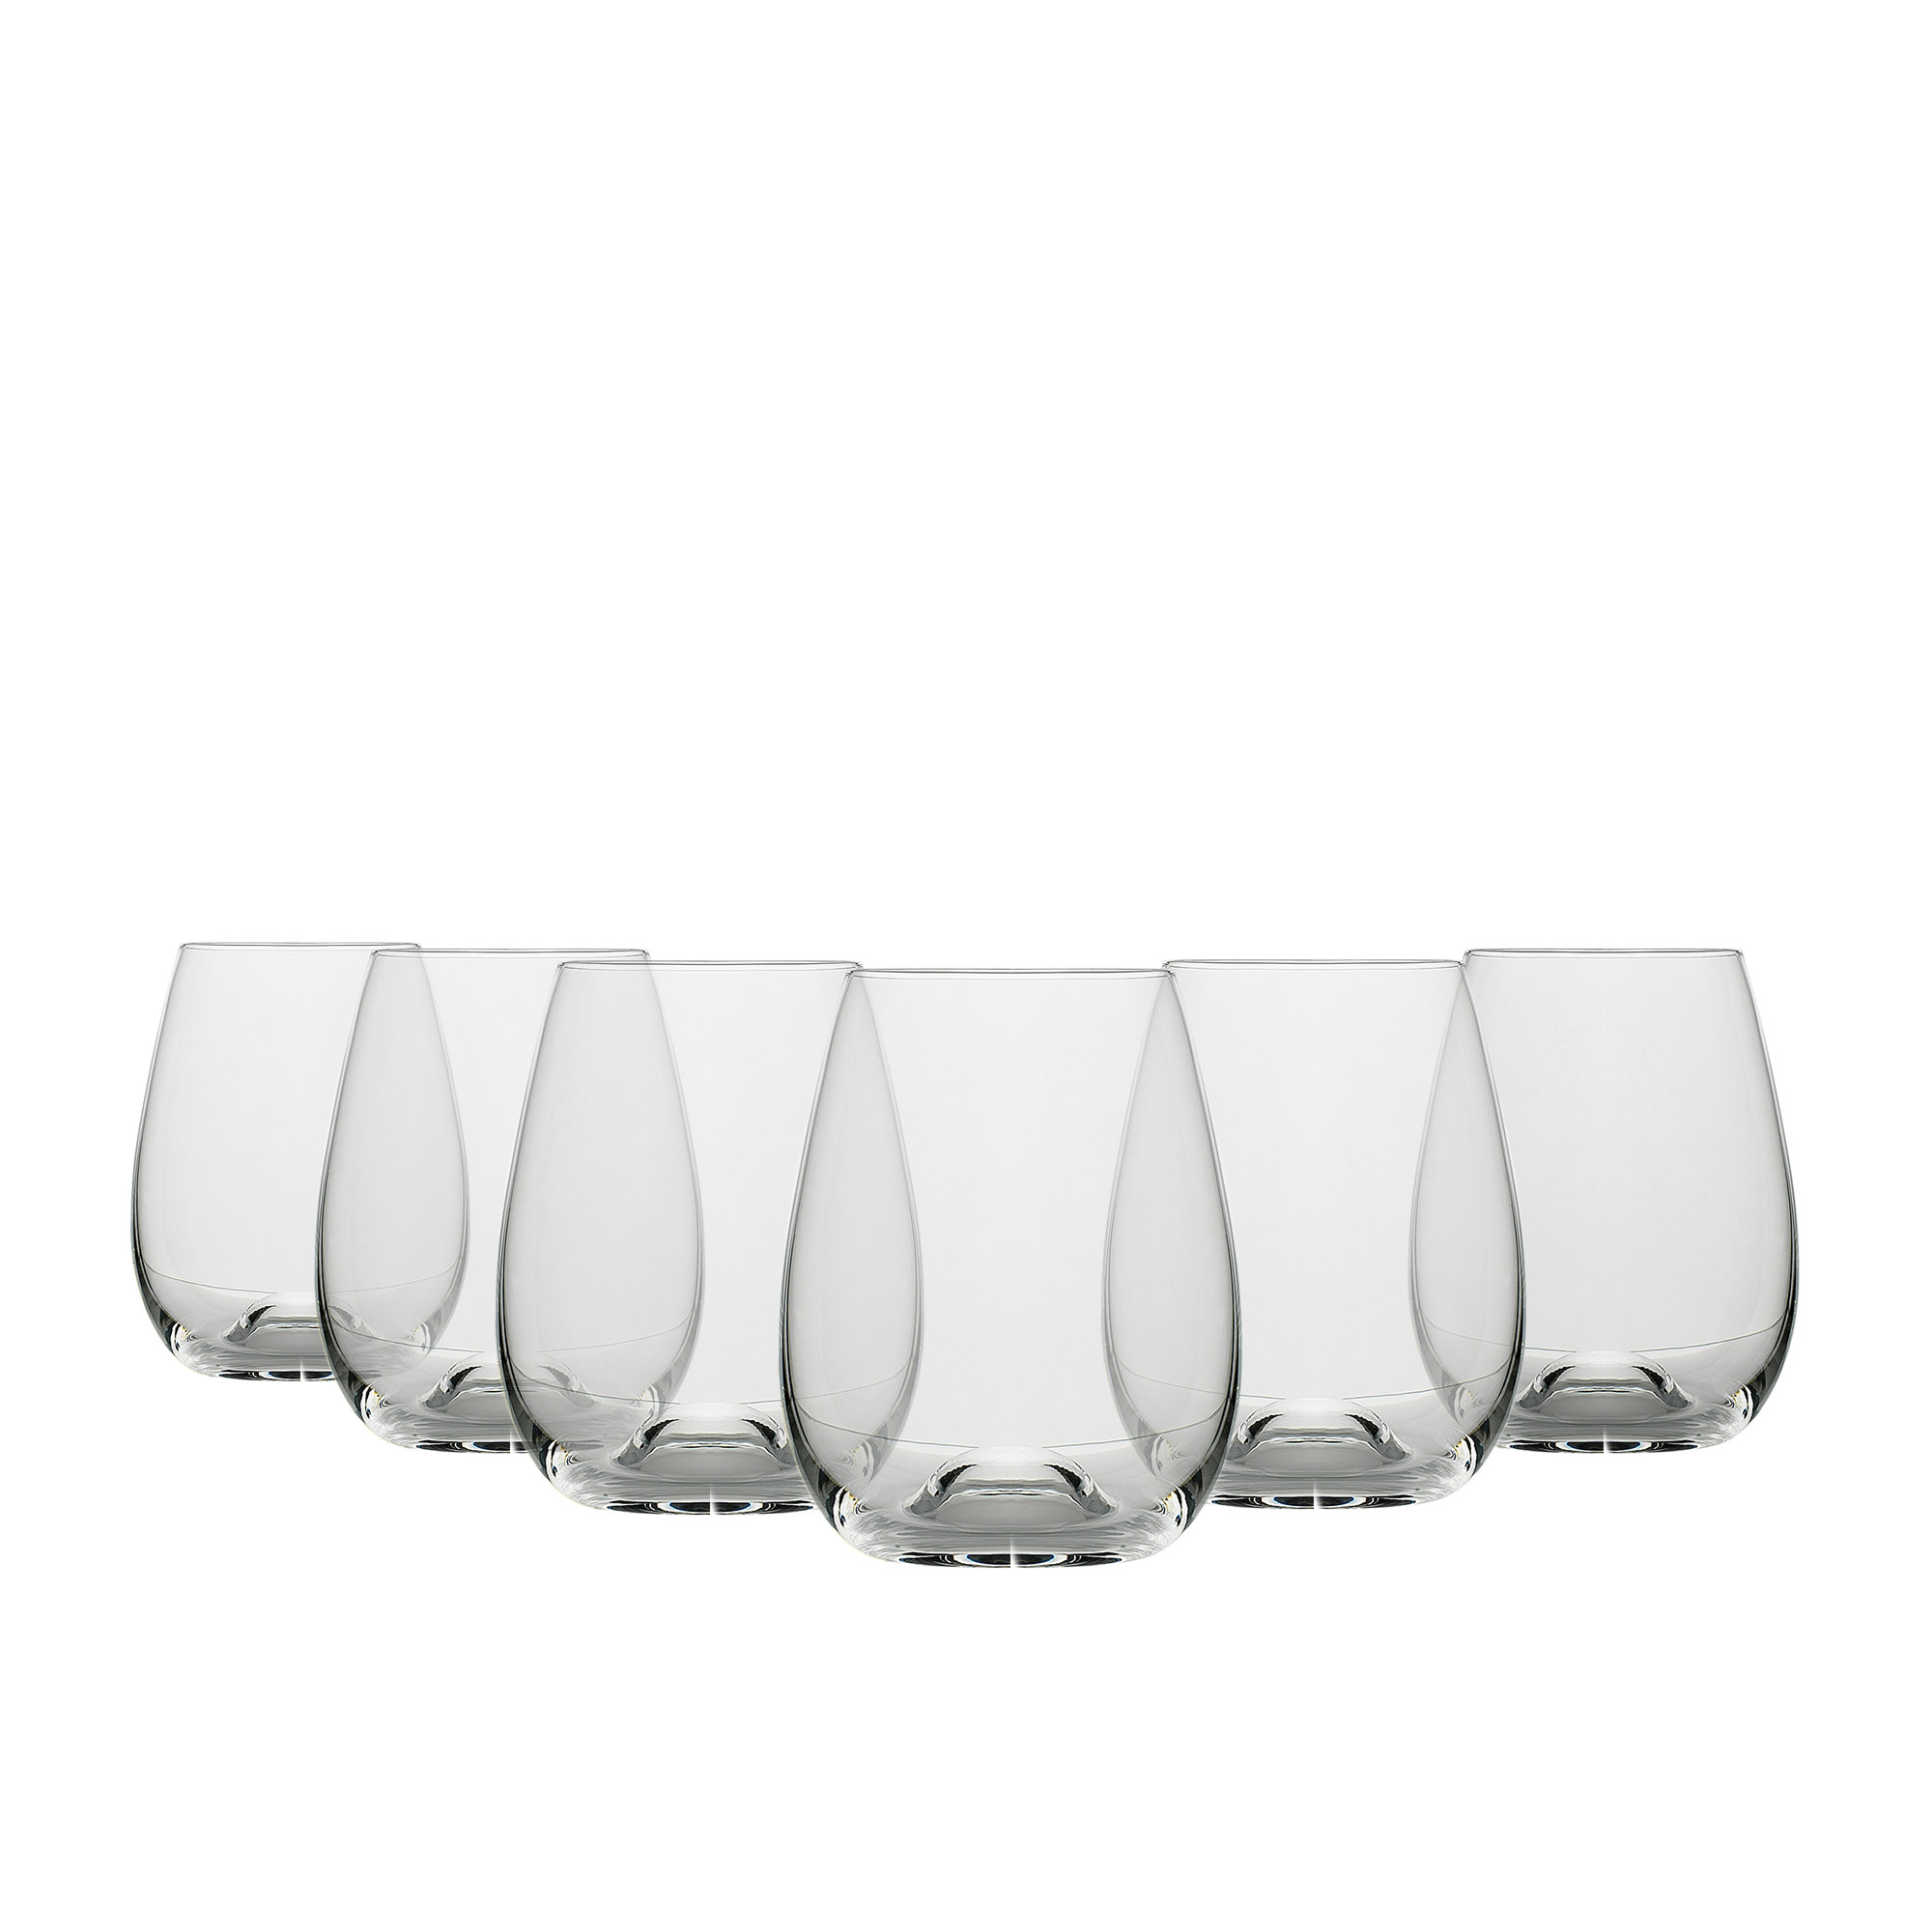 Ecology Classic 6pc Stemless Wine Glass Set 460ml